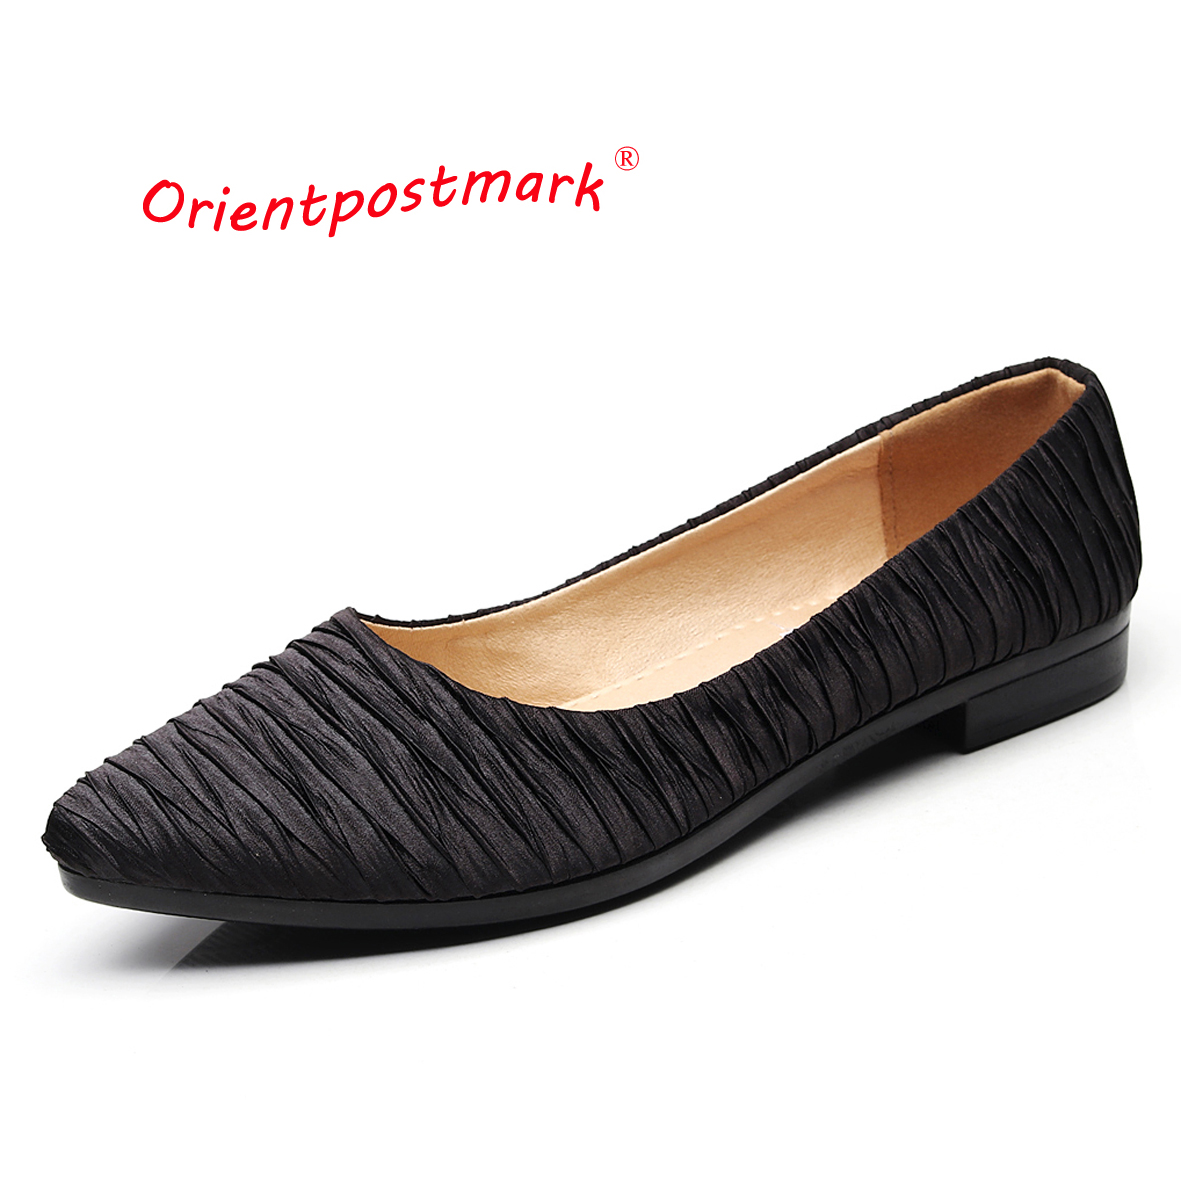 Orientpostmark Women Flats Shoes for Work Cloth Sweet Loafers Slip On Women Ballet Flats Shoes Women's Pregnant Flats Boat Shoes women shoes women ballet flats shoes for work flats sweet loafers slip on women s pregnant flat shoes oversize boat shoes d35m25